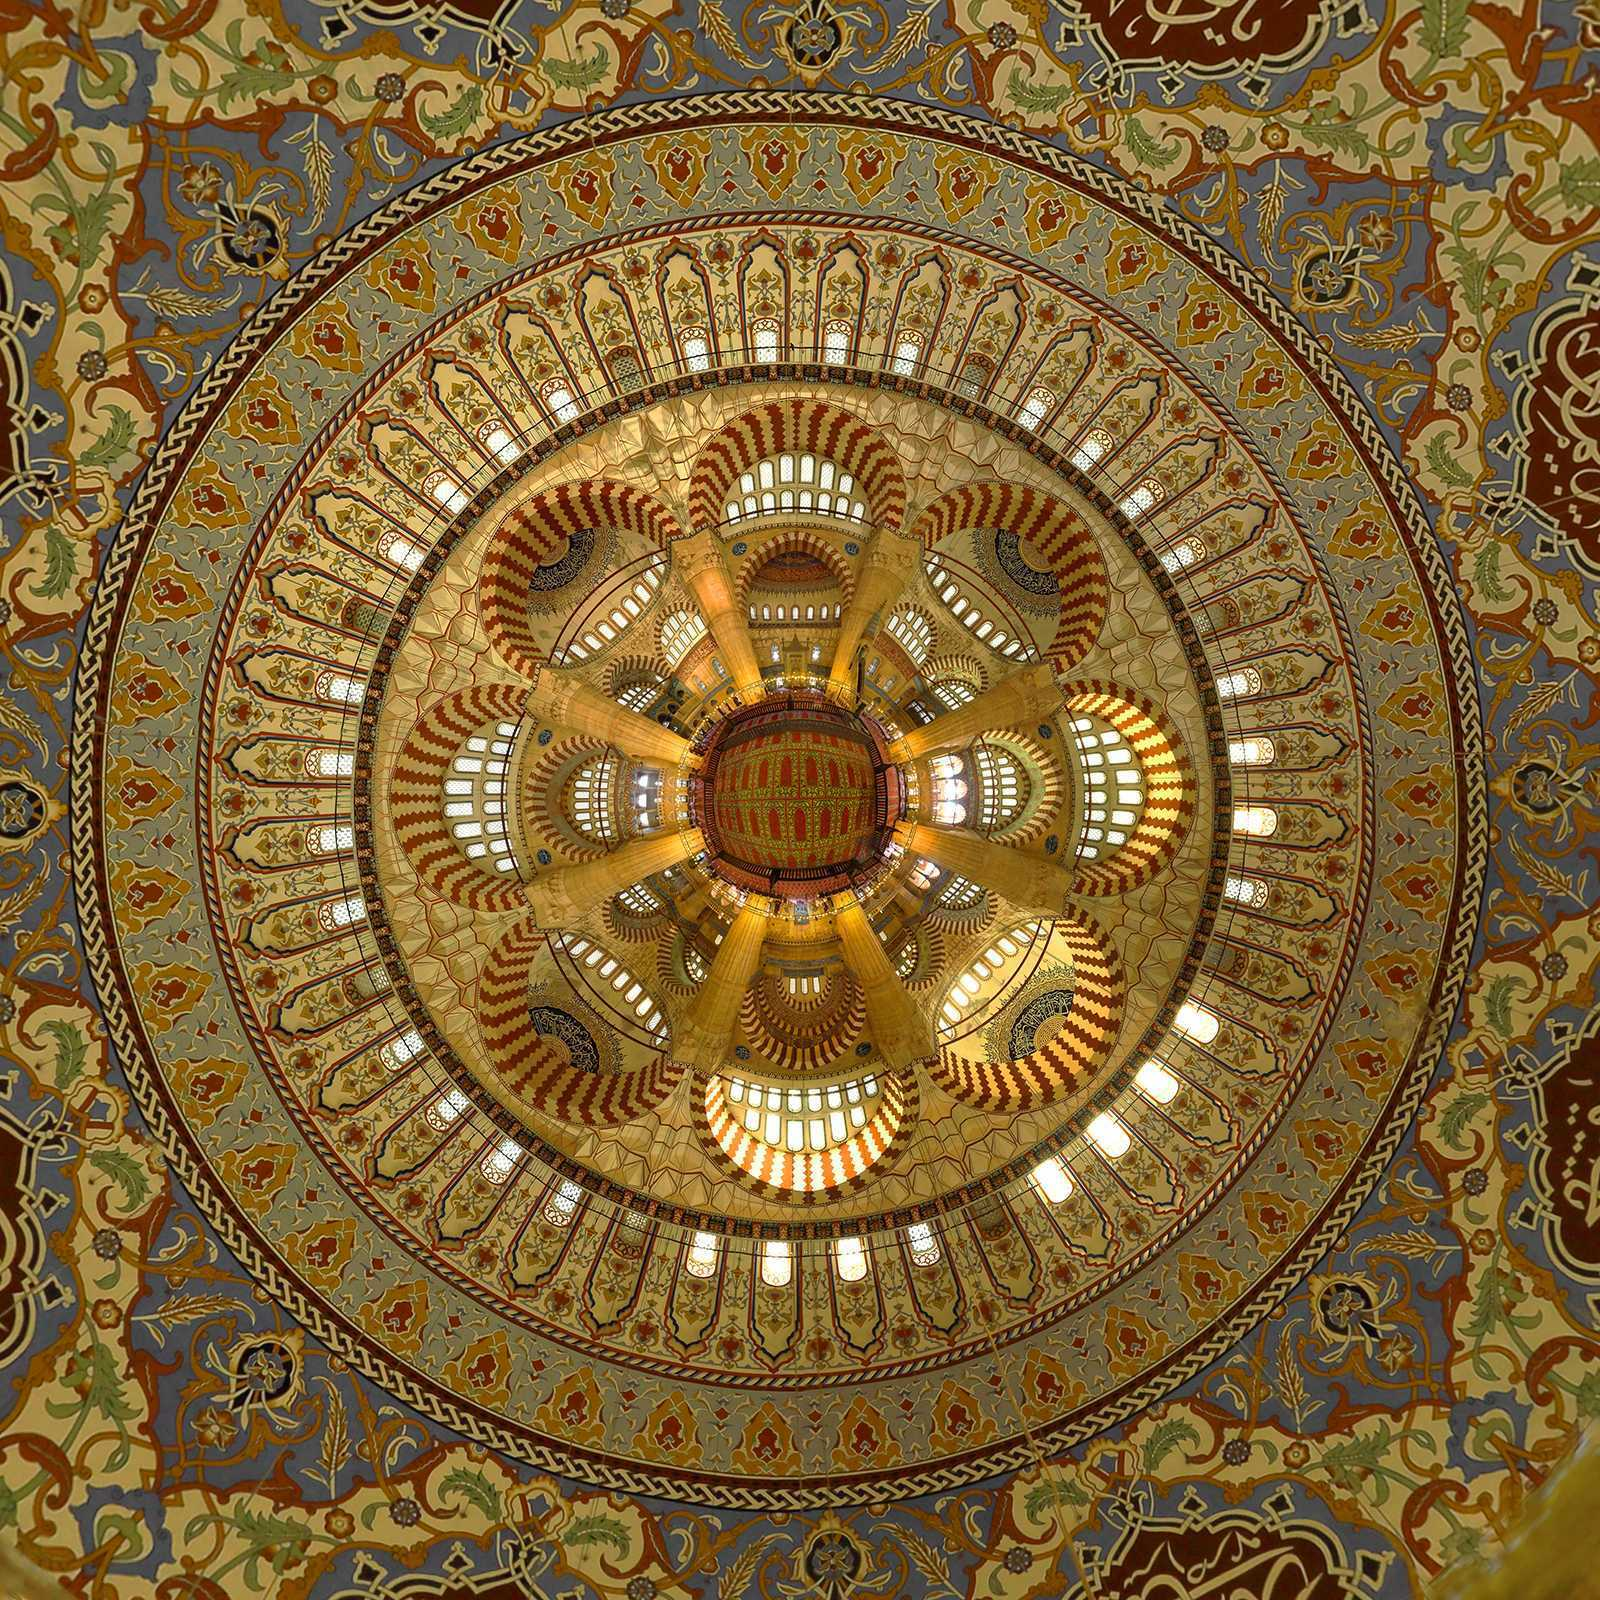 Selimiye Mosque, Edirne, 2013. Looking down from the dome, digital stitch.